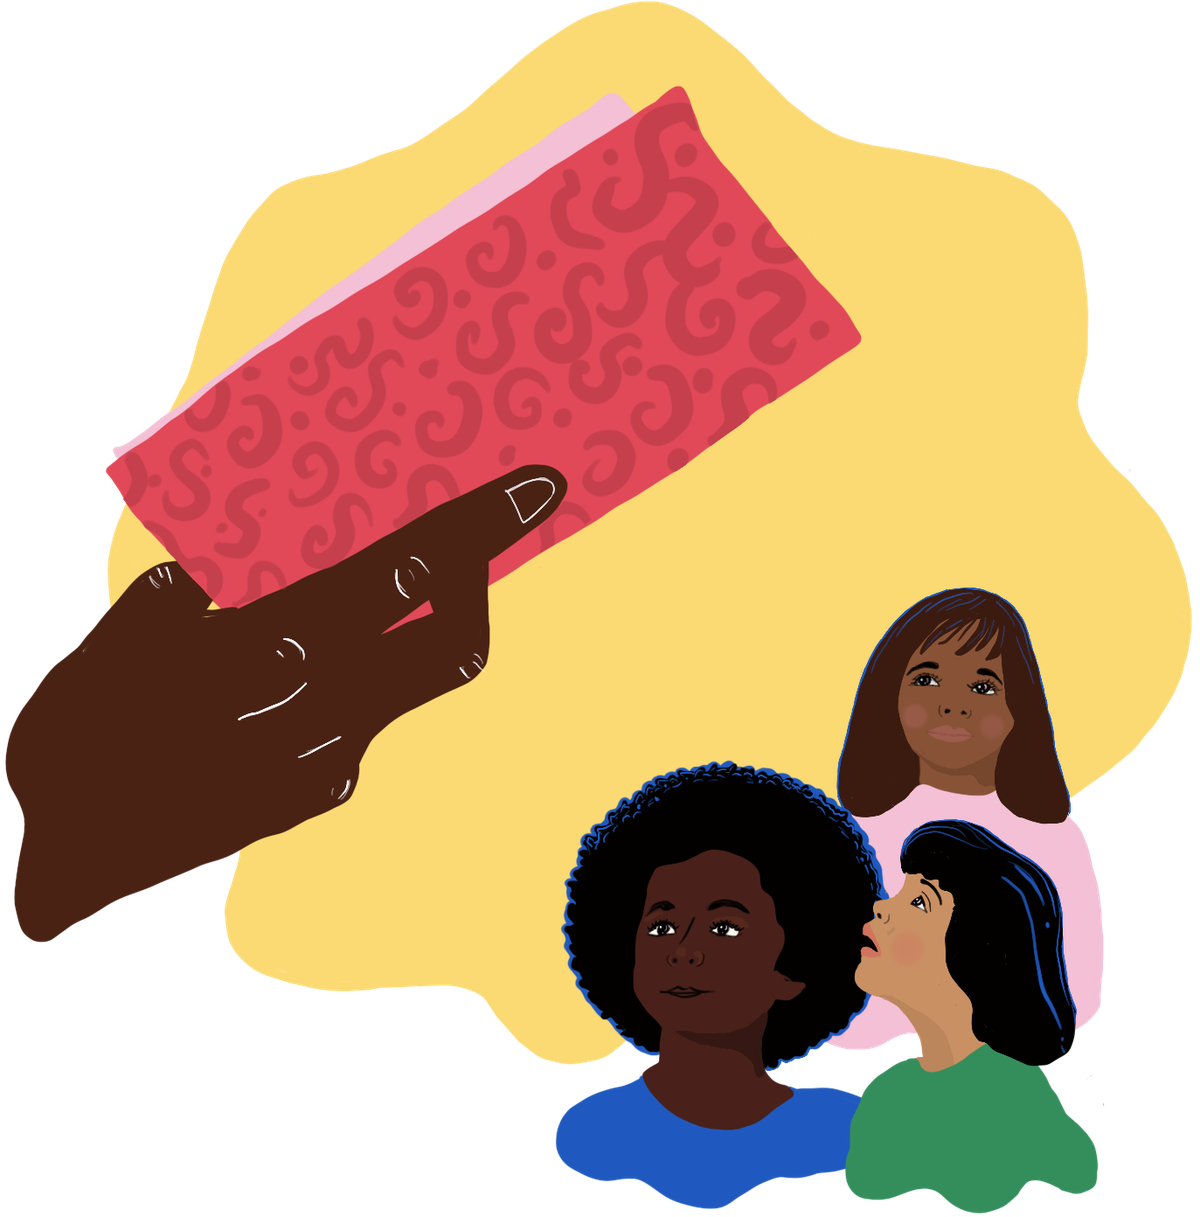 A child care worker's hand holds a book while reading to three young girls